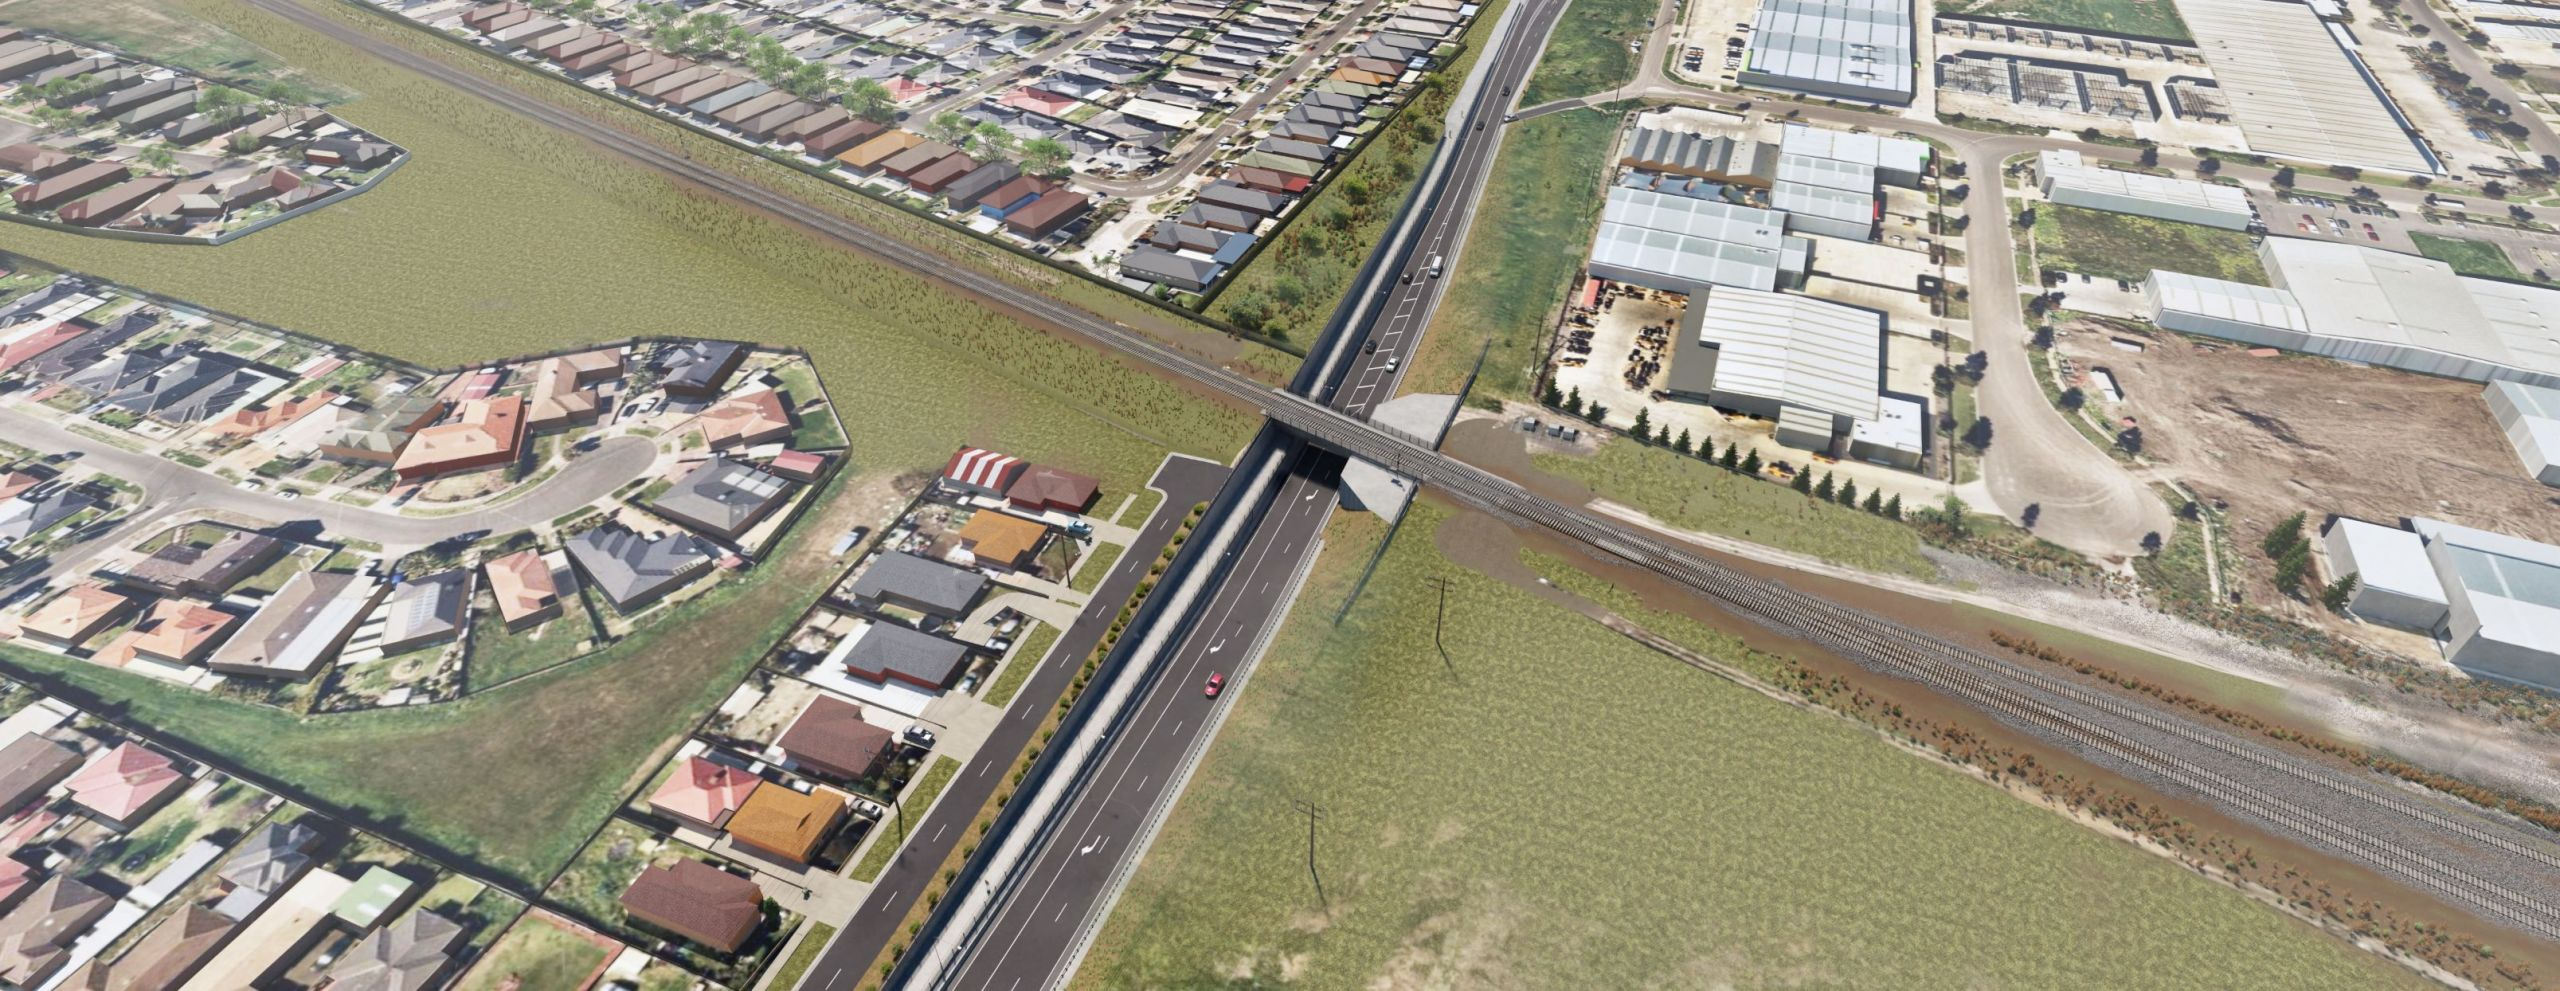 New Robinsons Road underpass, Deer Park – looking south east